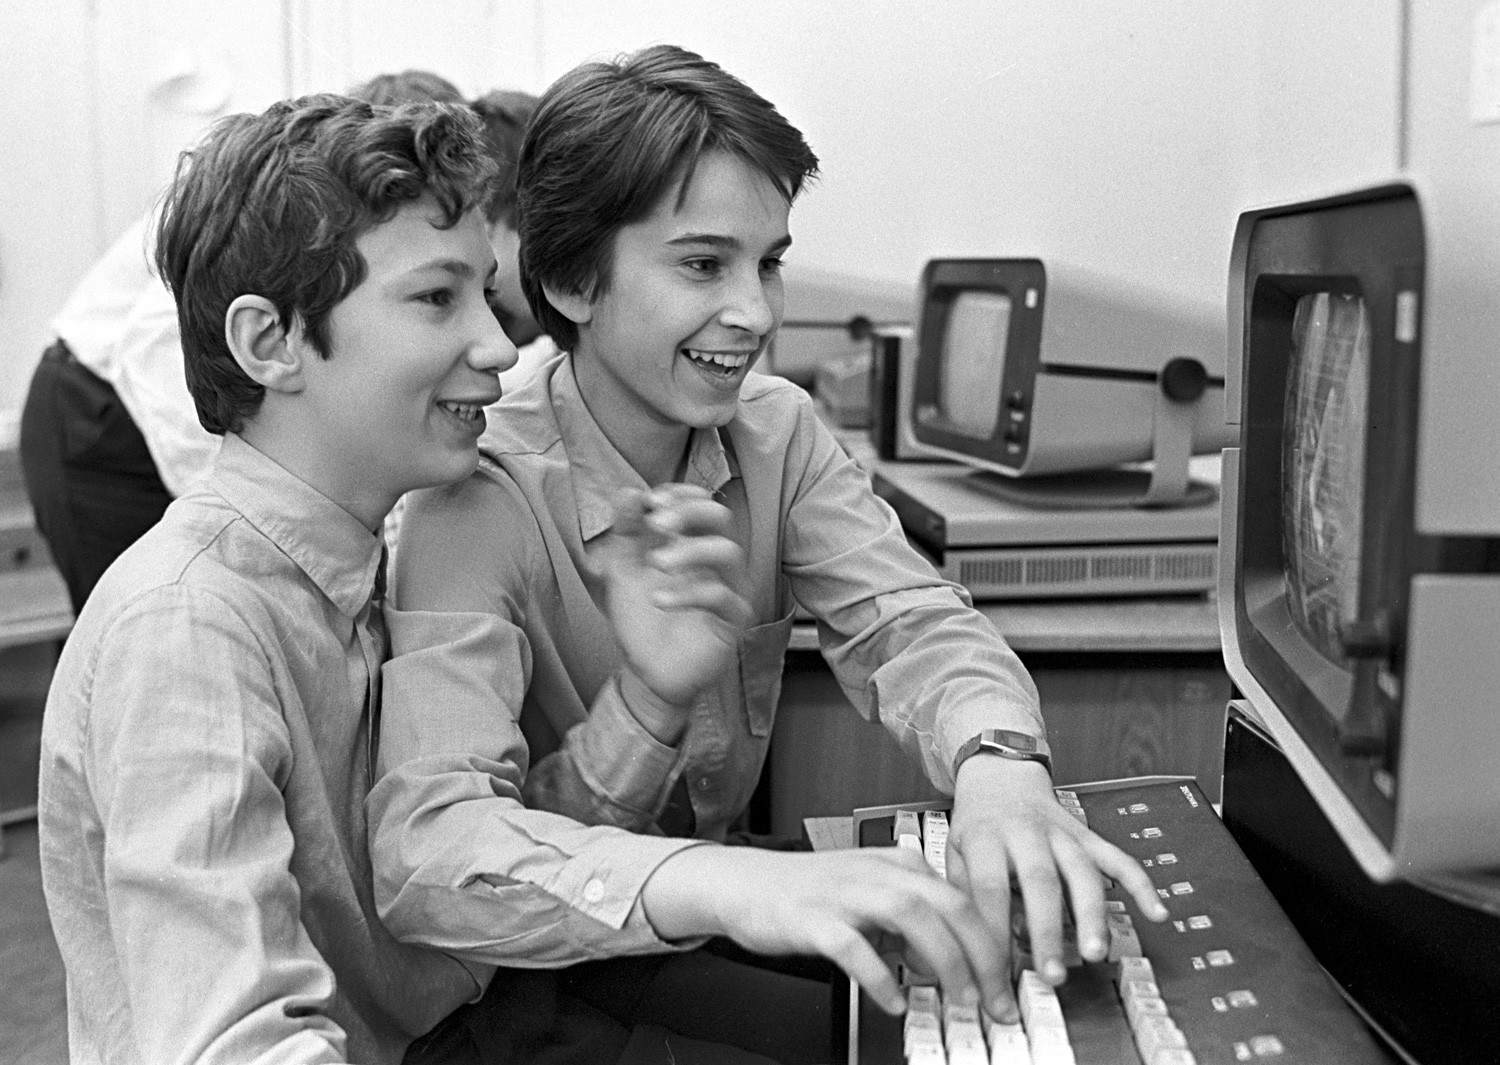 Soviet schoolboys are learning how to handle computers at information science lesson (1985)